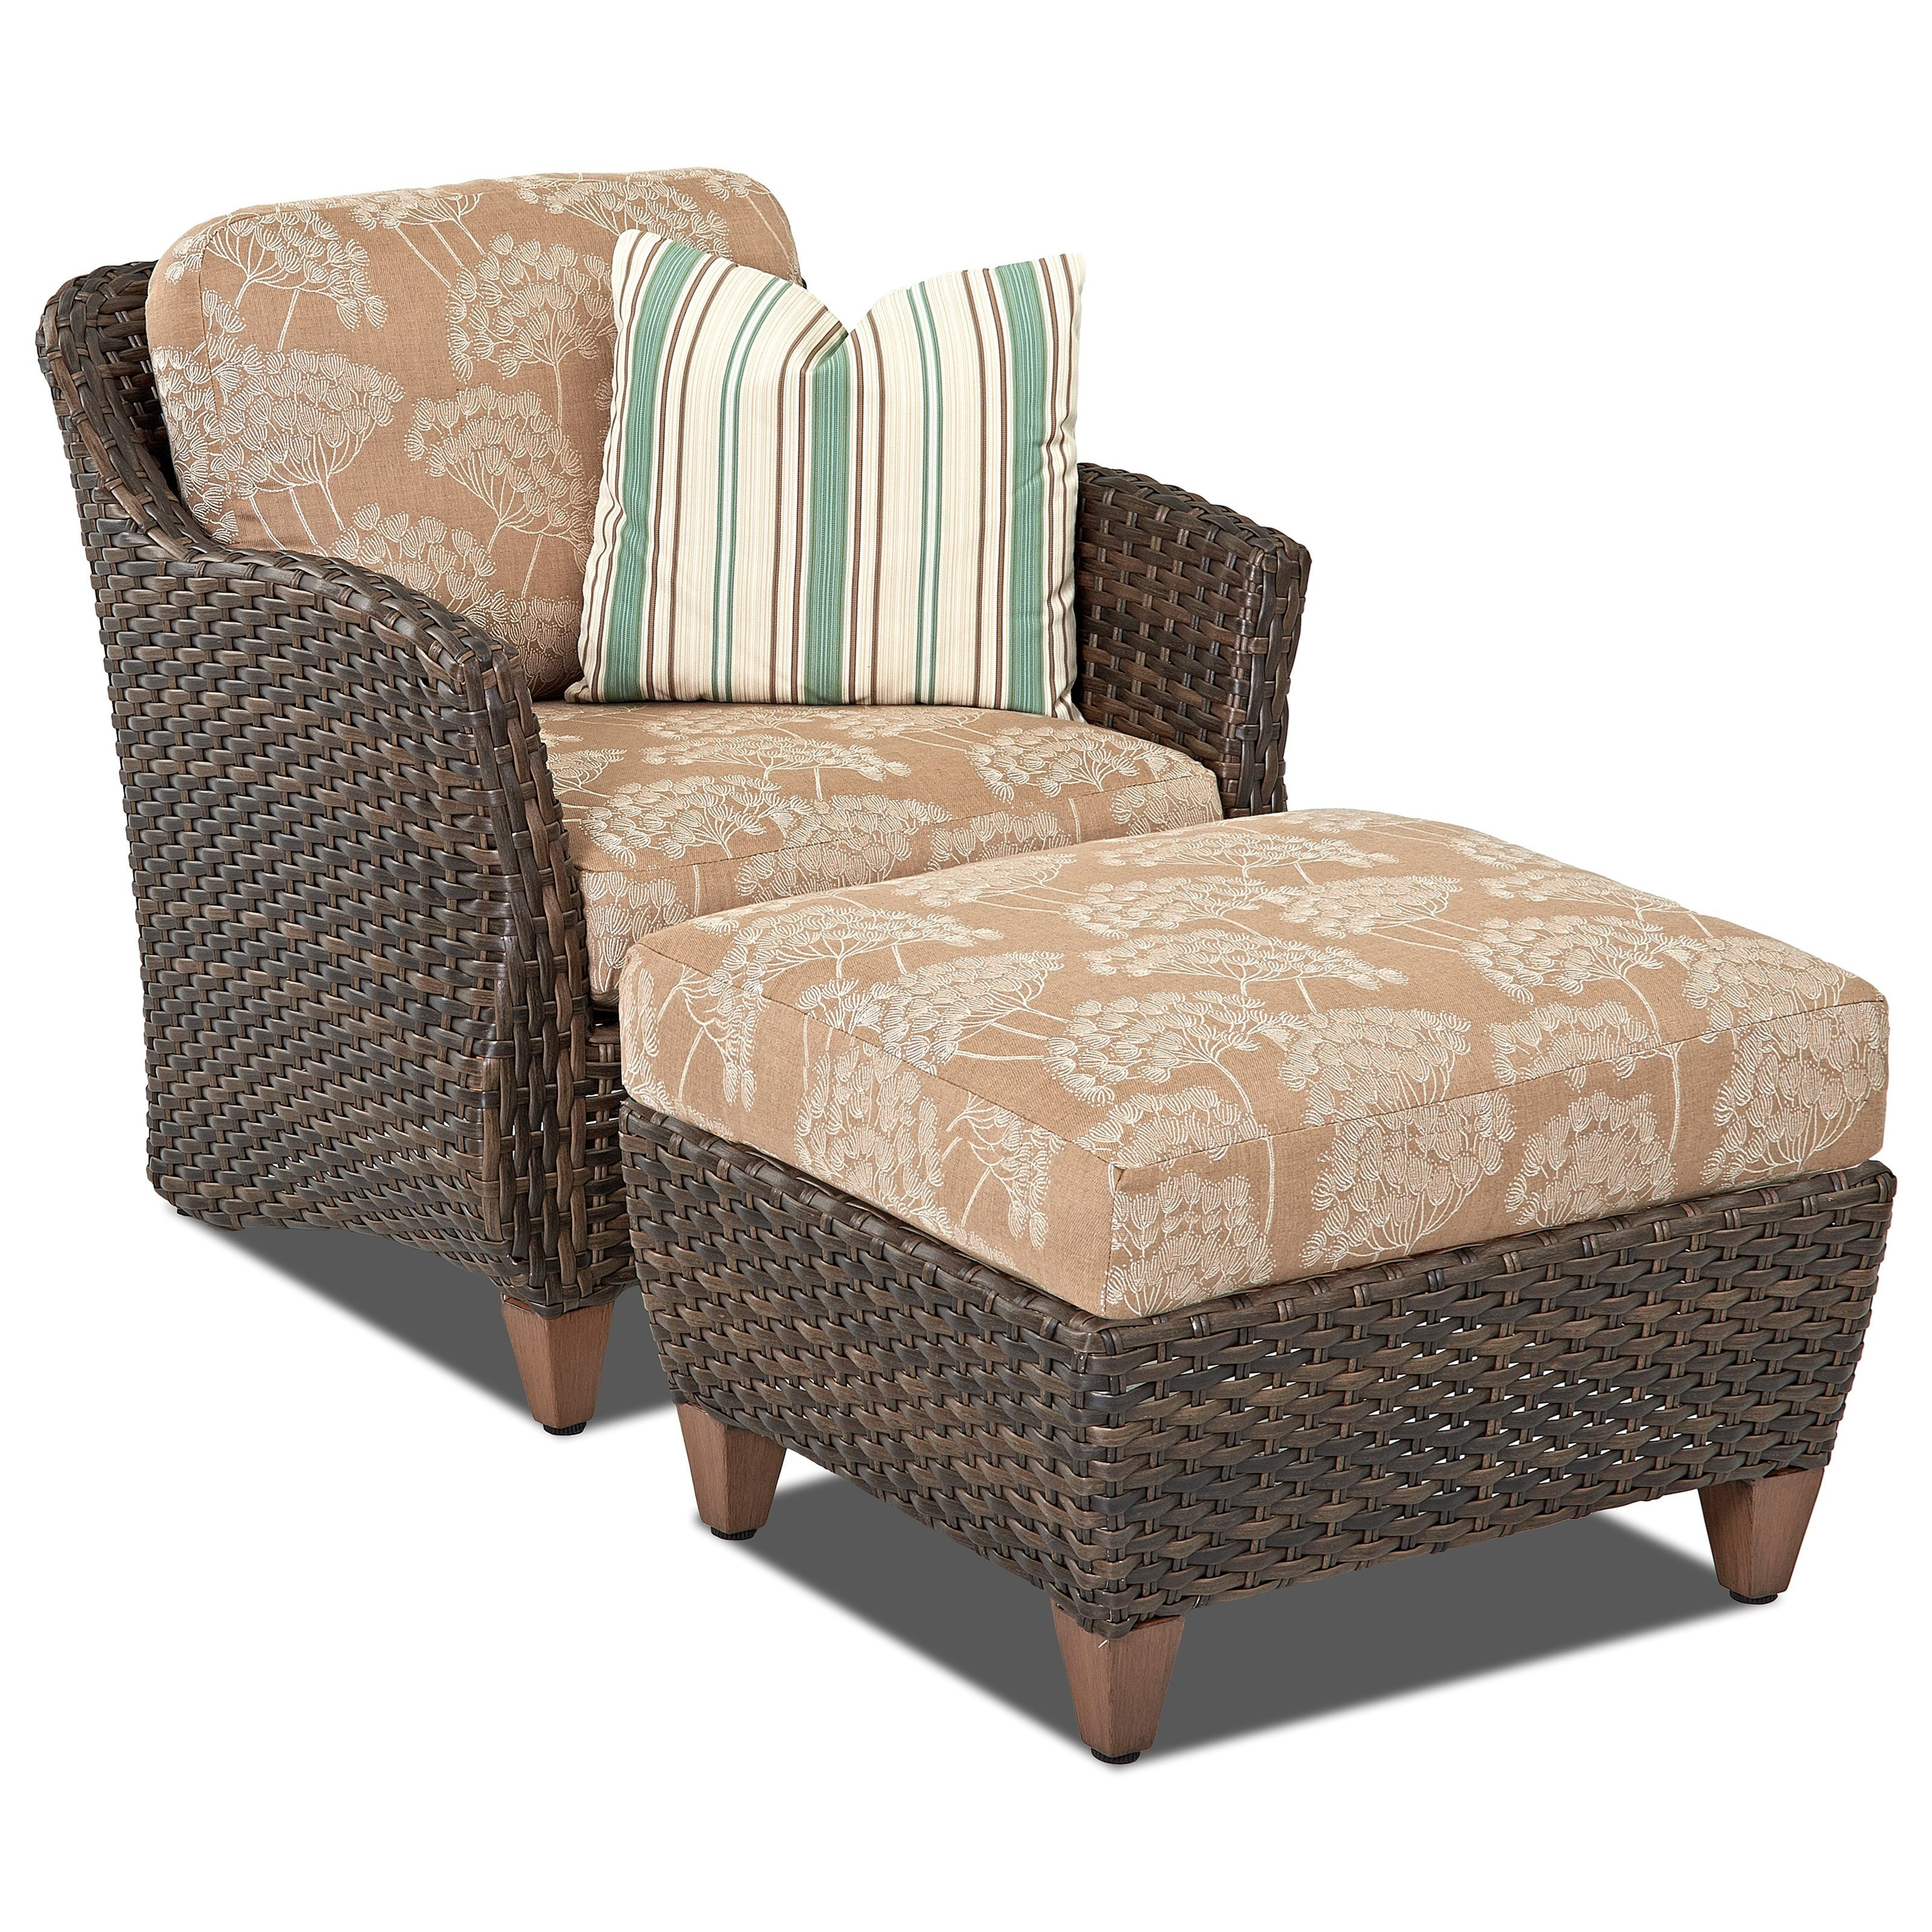 Sycamore Outdoor Chair And Ottoman With Drainable Cushions By Klaussner  Outdoor